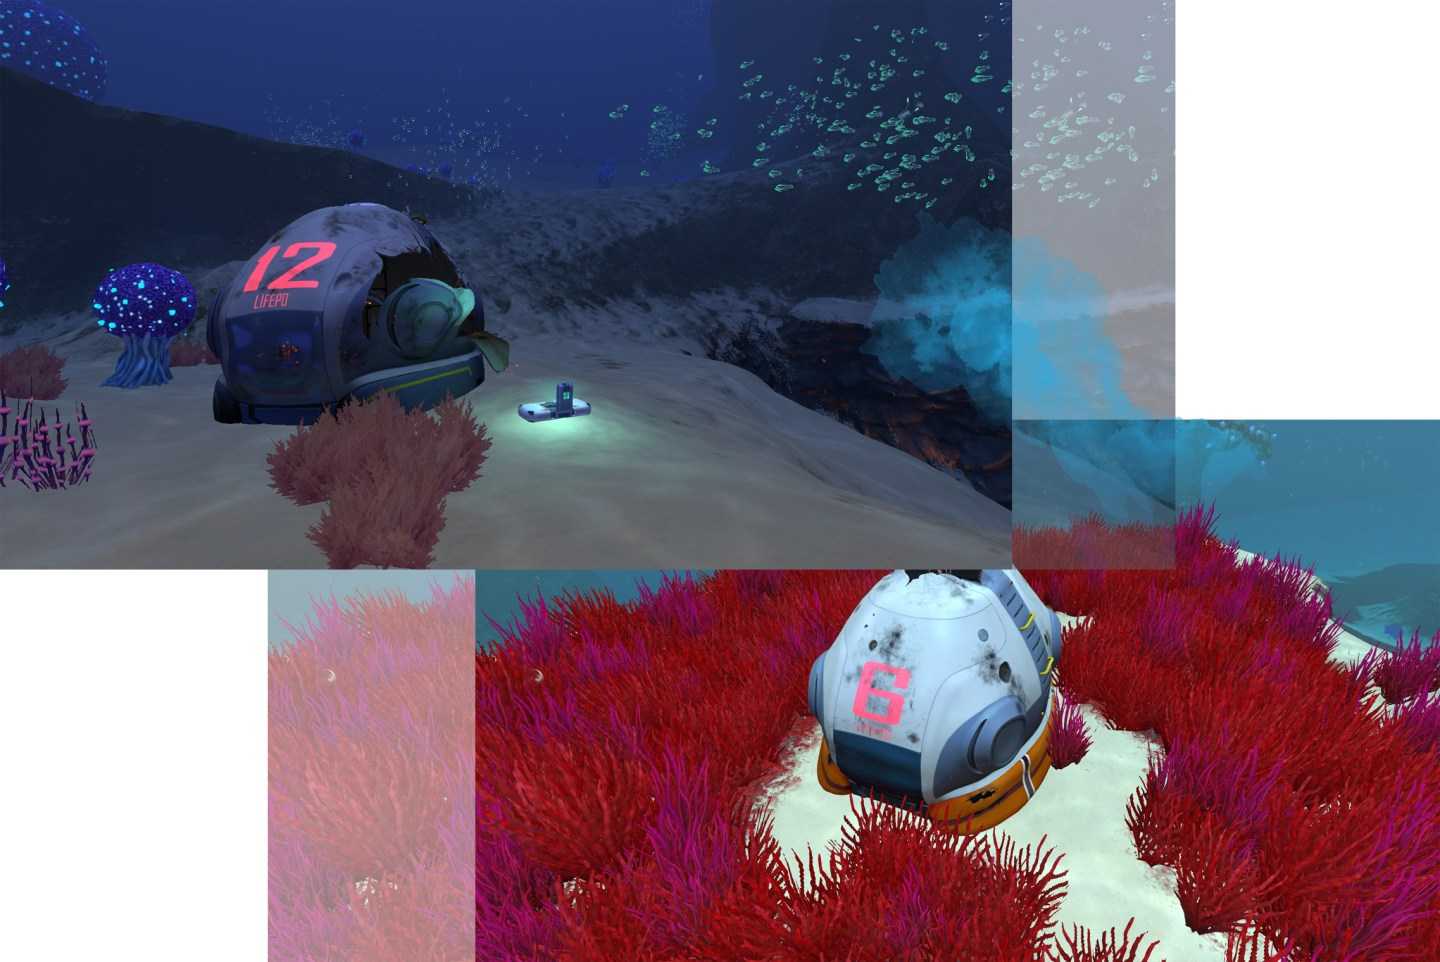 Subnautica: What Happened to the Other Passengers of the